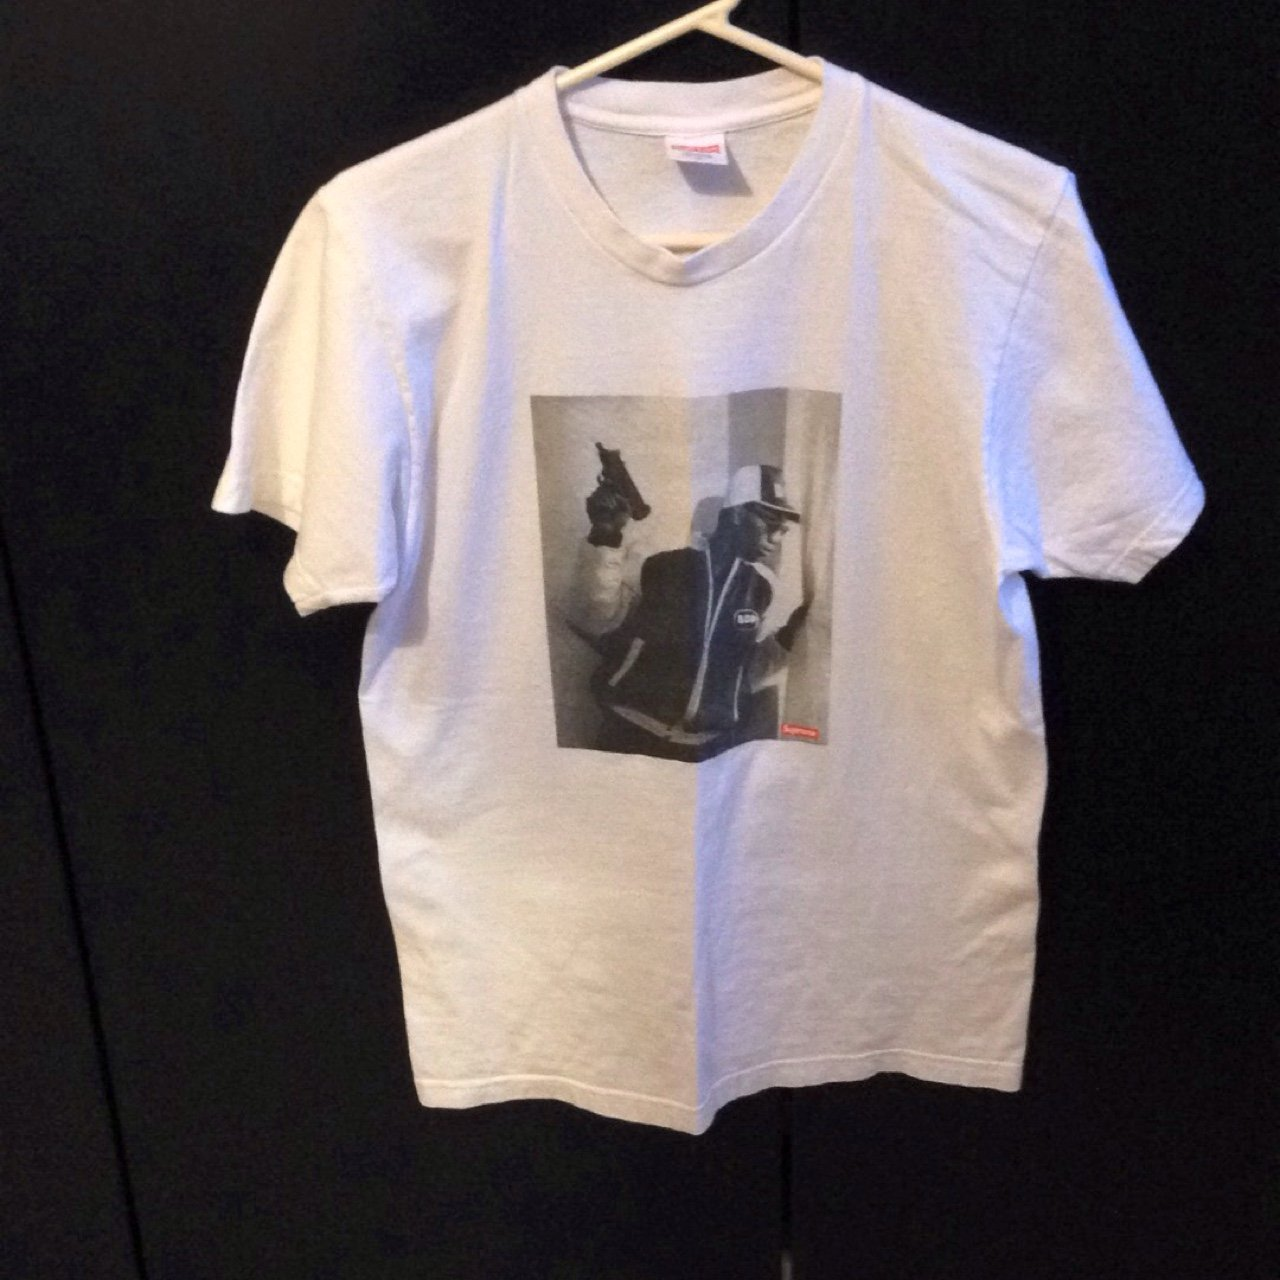 8c3aa463268f Supreme KRS One tee white size medium. 9 10 condition no at - Depop